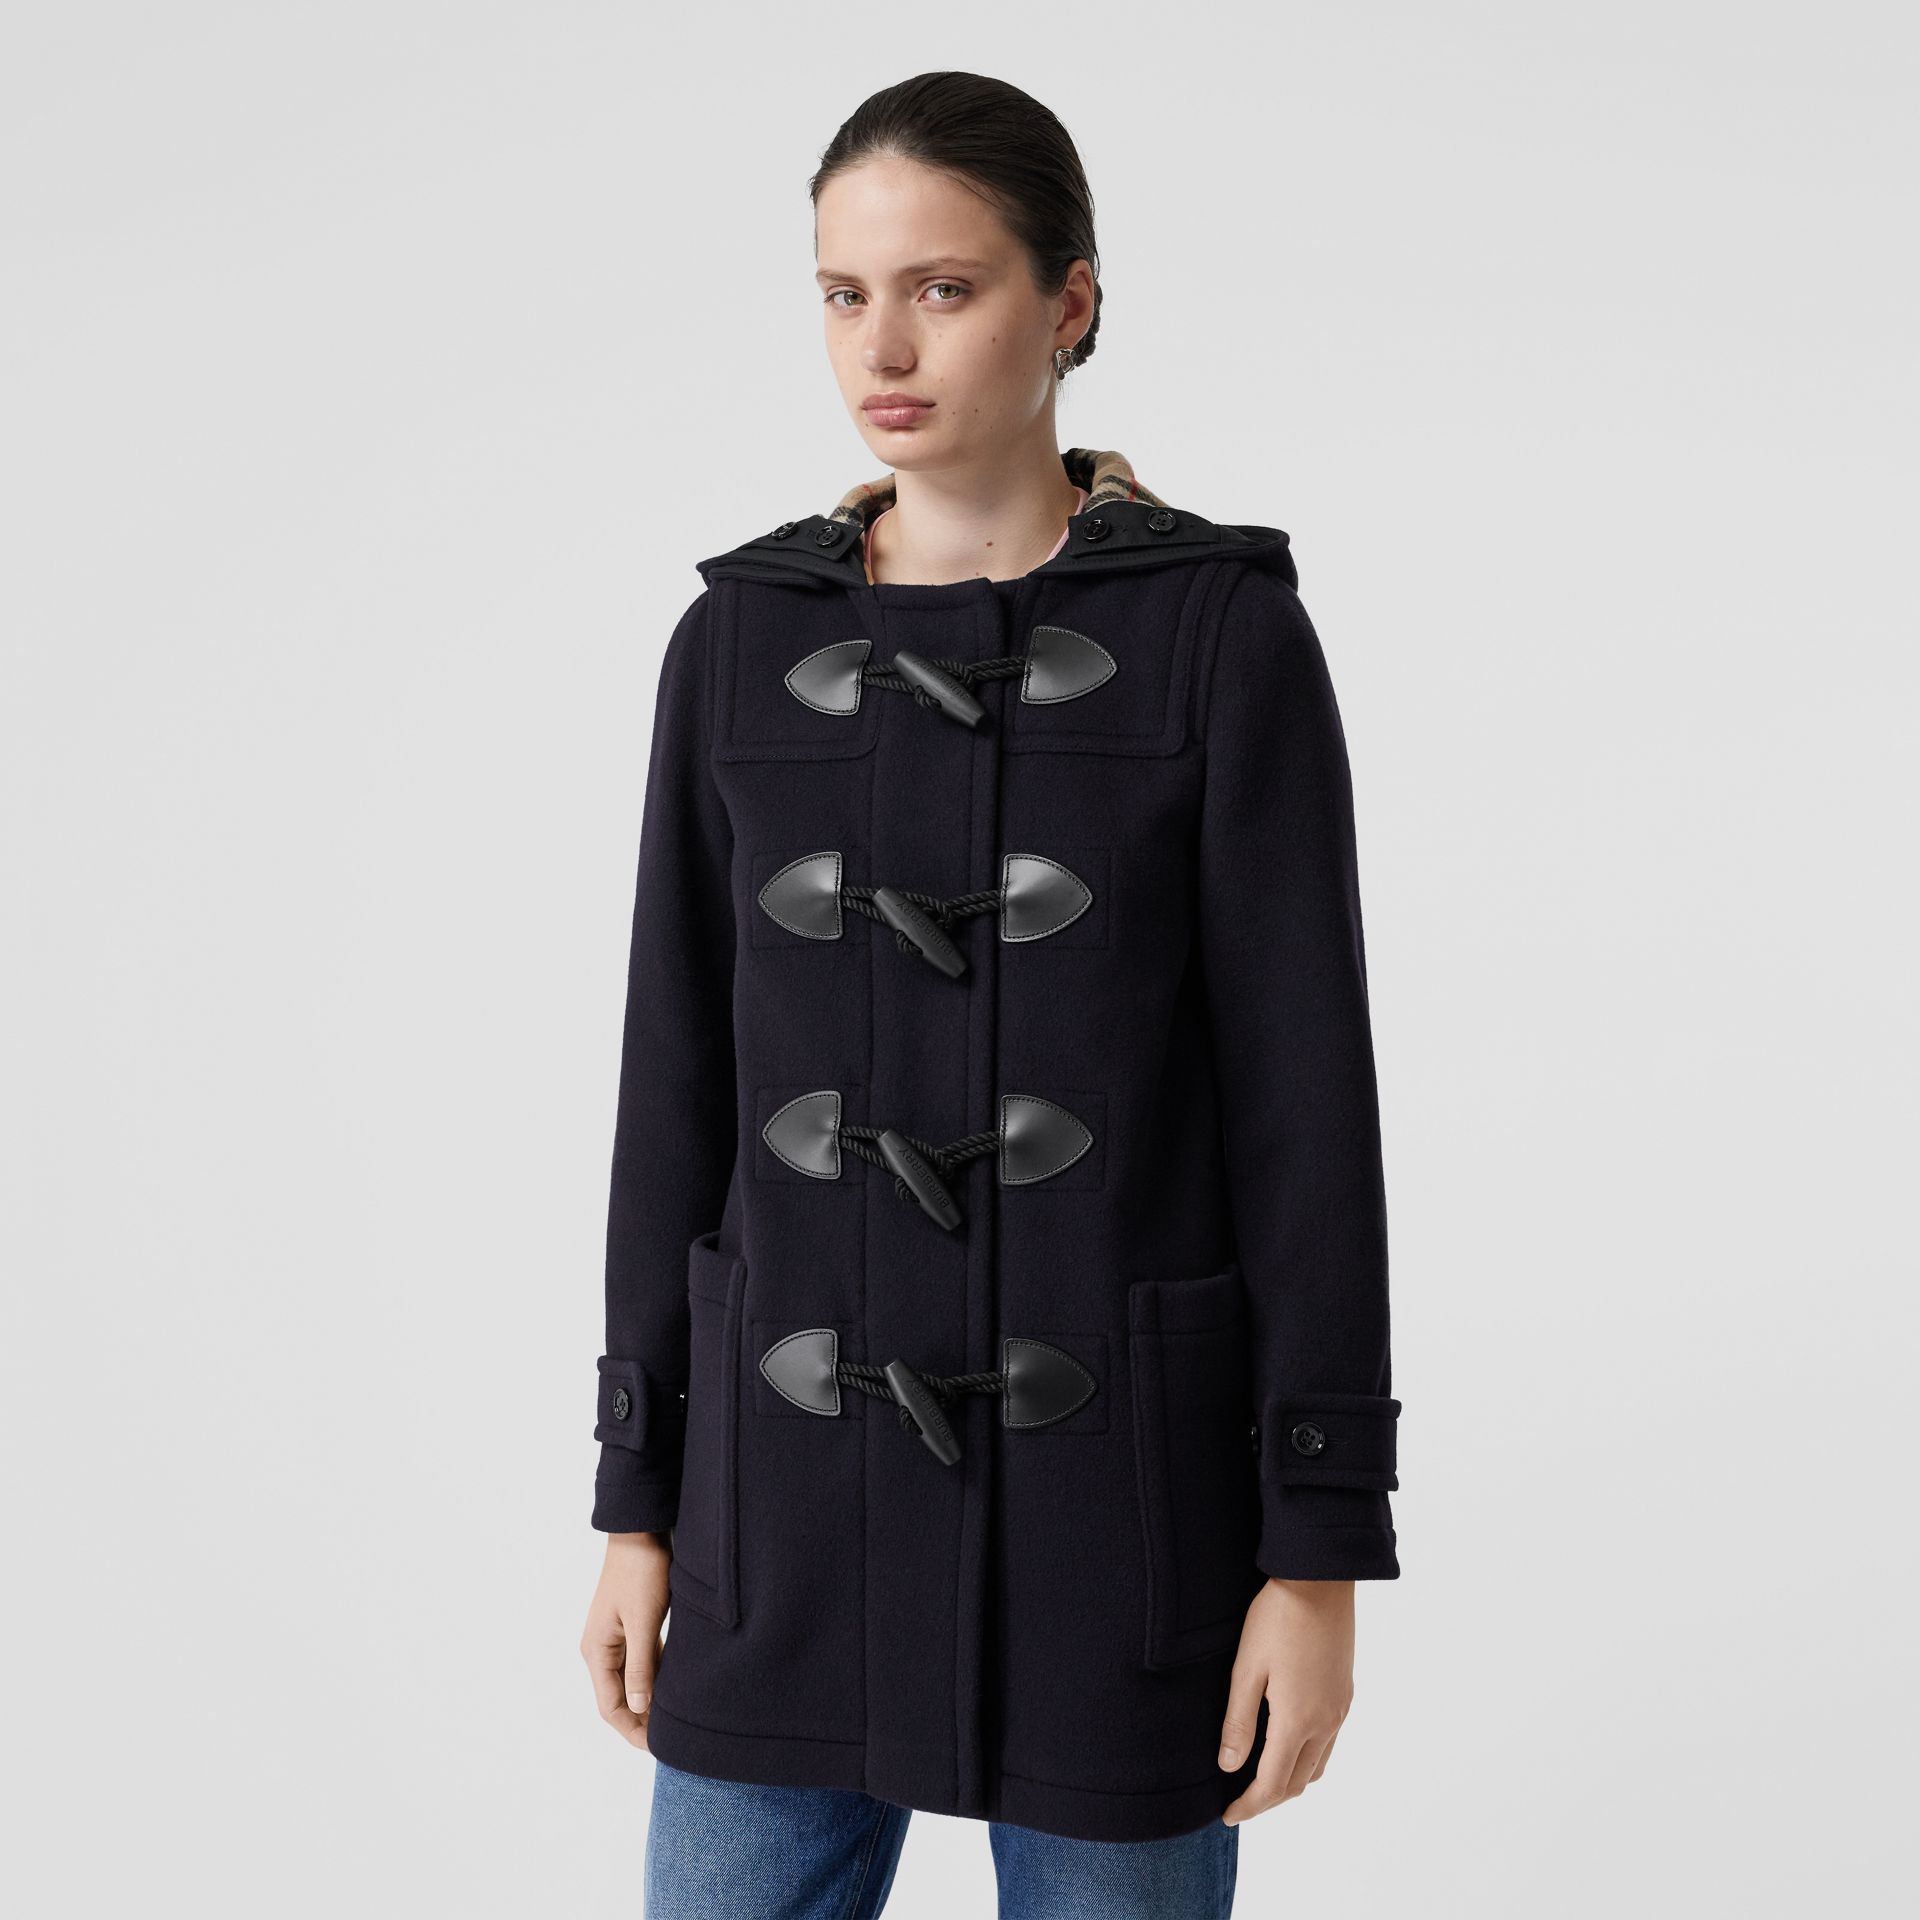 Wool Blend Duffle Coat in Navy - Women | Burberry Hong Kong S.A.R - gallery image 6